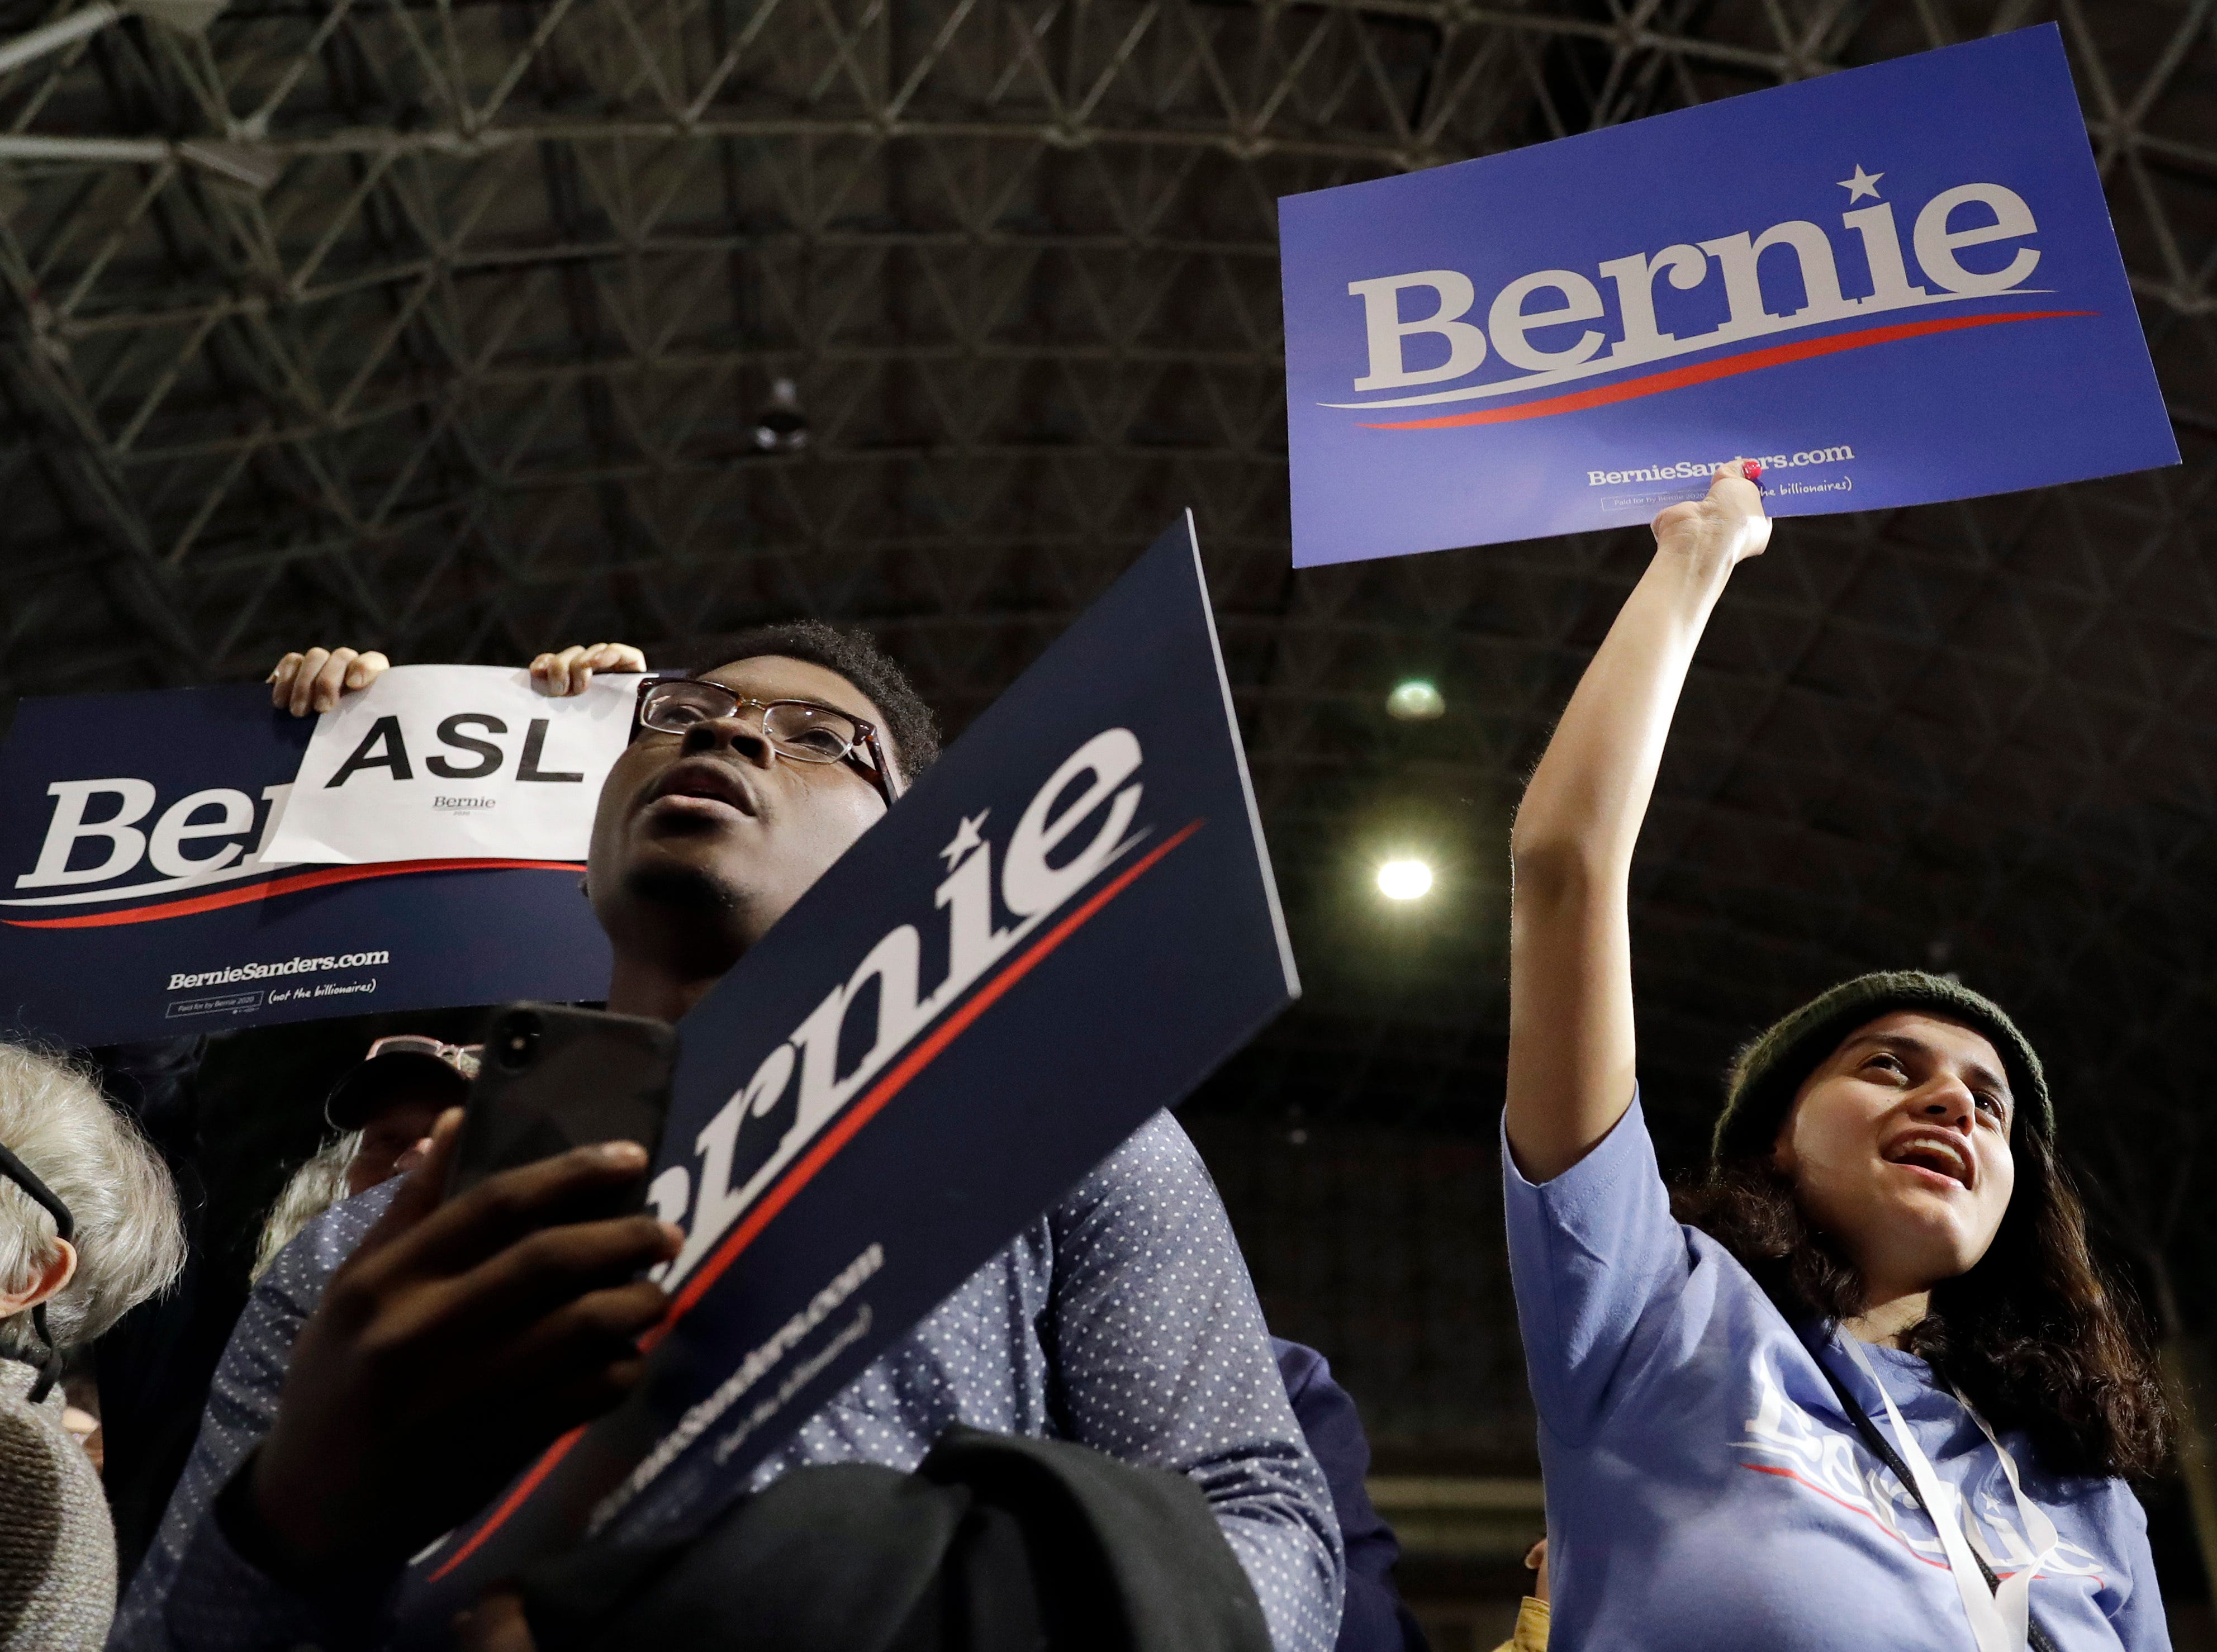 Supporters hold signs as they listen to Sen. Bernie Sanders, I-Vt., where he kicks off his 2020 presidential campaign at Navy Pier in Chicago, Sunday, March 3, 2019. Over the next several weeks, Sanders will travel to Iowa, New Hampshire, South Carolina, Nevada, and California. He will then return to Burlington, Vt., for the official launch of his campaign.